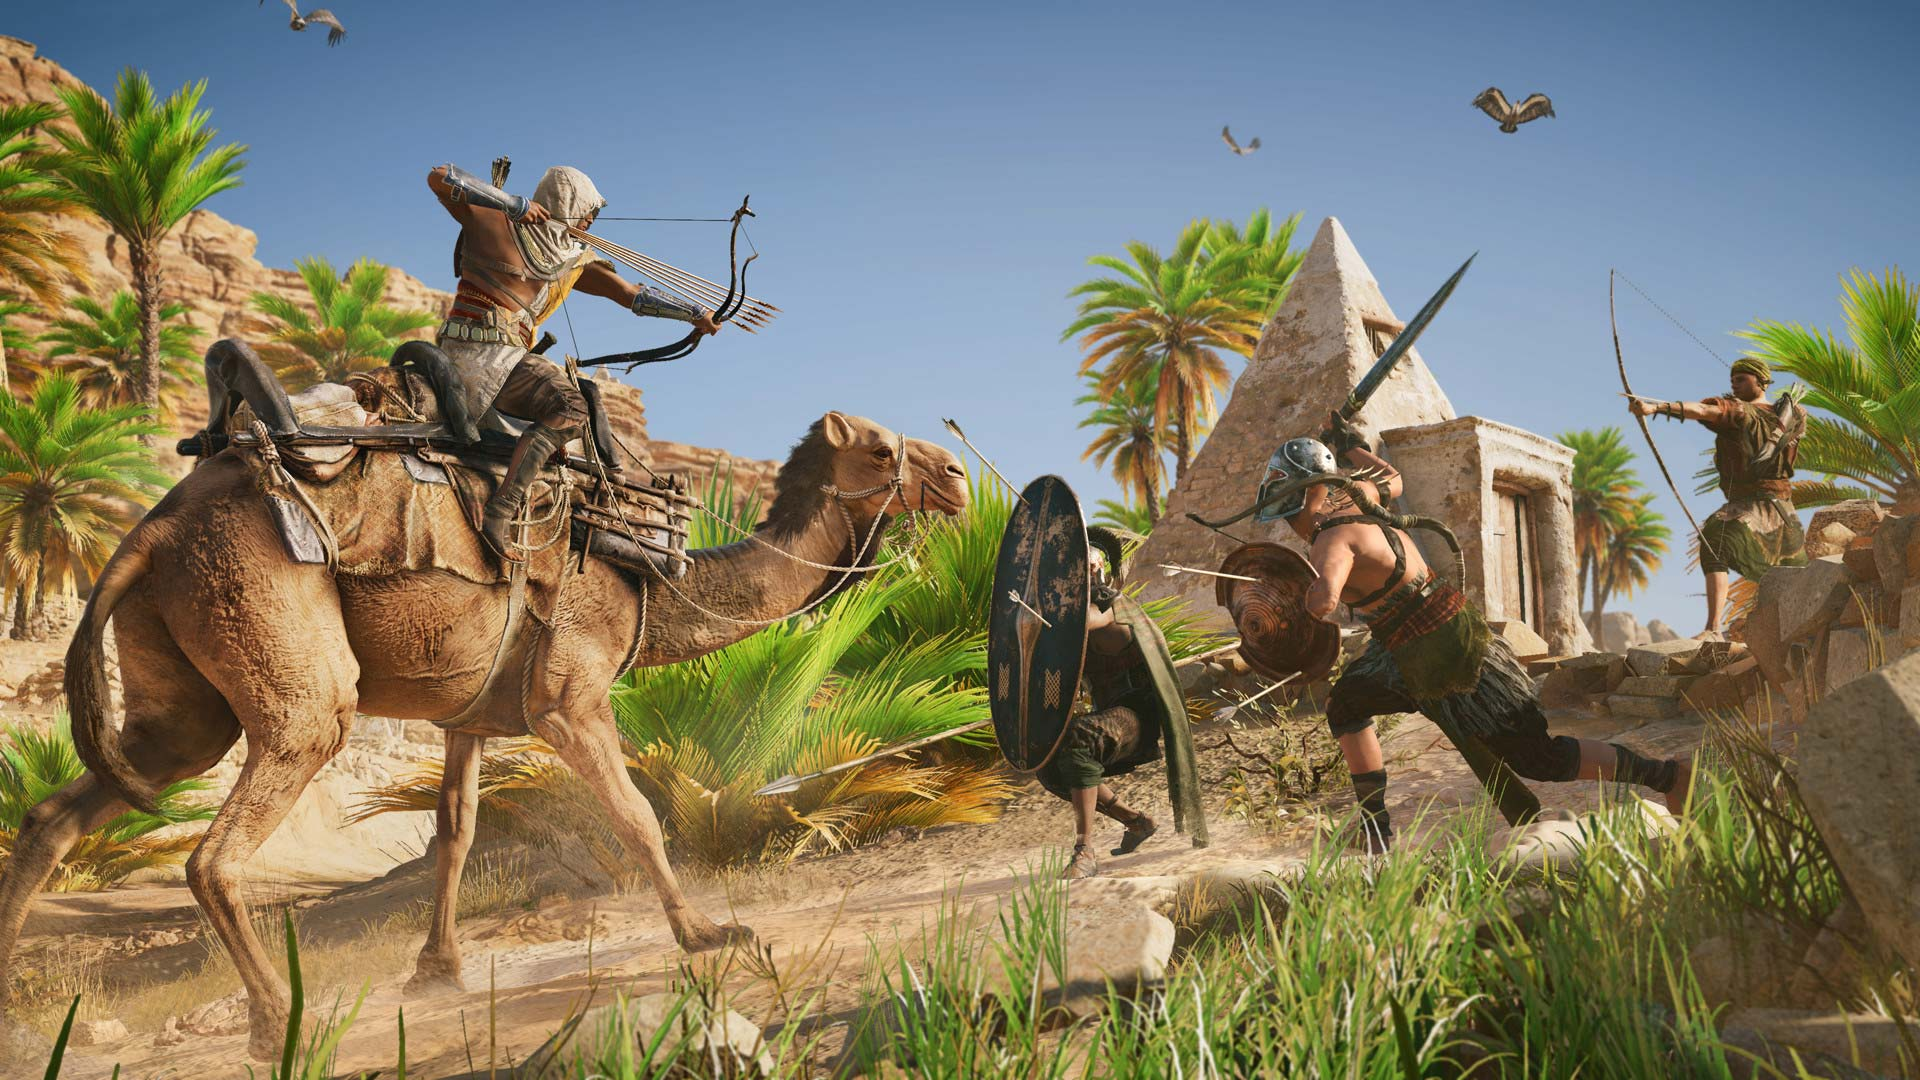 Скриншоты к Assassin's Creed: Origins v1.2.1 + DLC | RePack от xatab на русском языке